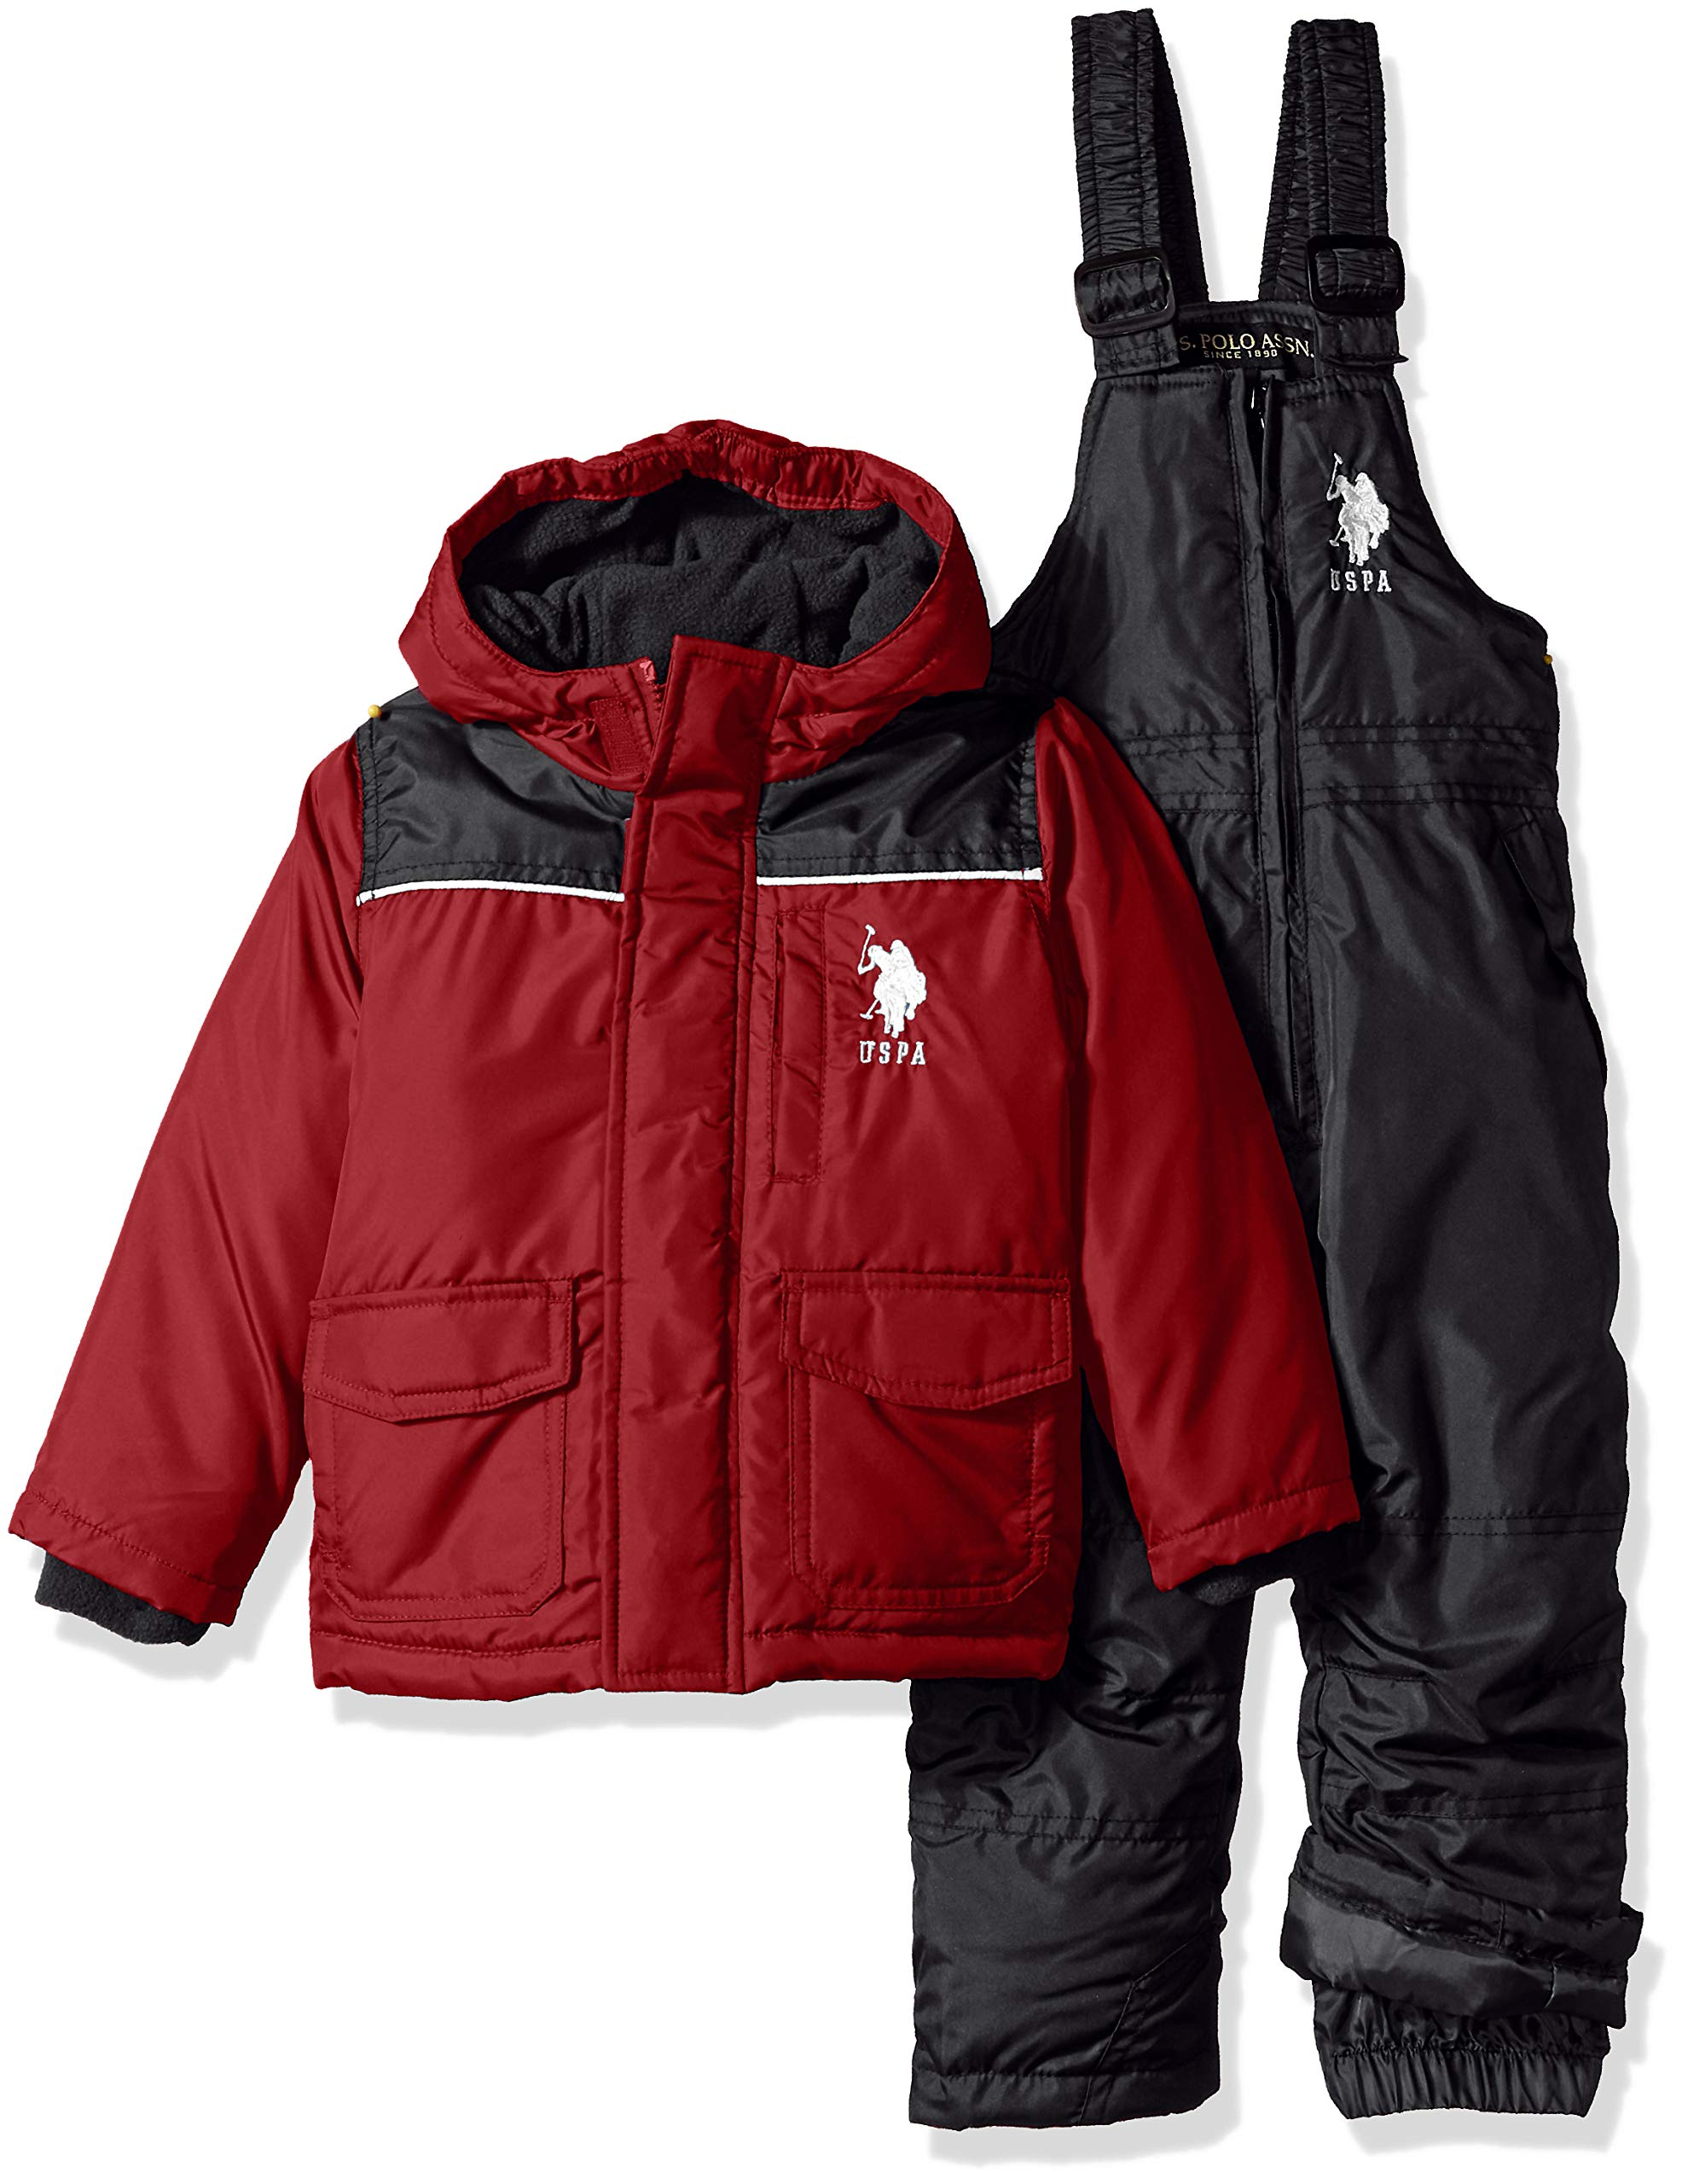 US Polo Association Boys' Toddler 2 Piece Snowsuit with Ski Bib Pant Set, Red/Black, 3T